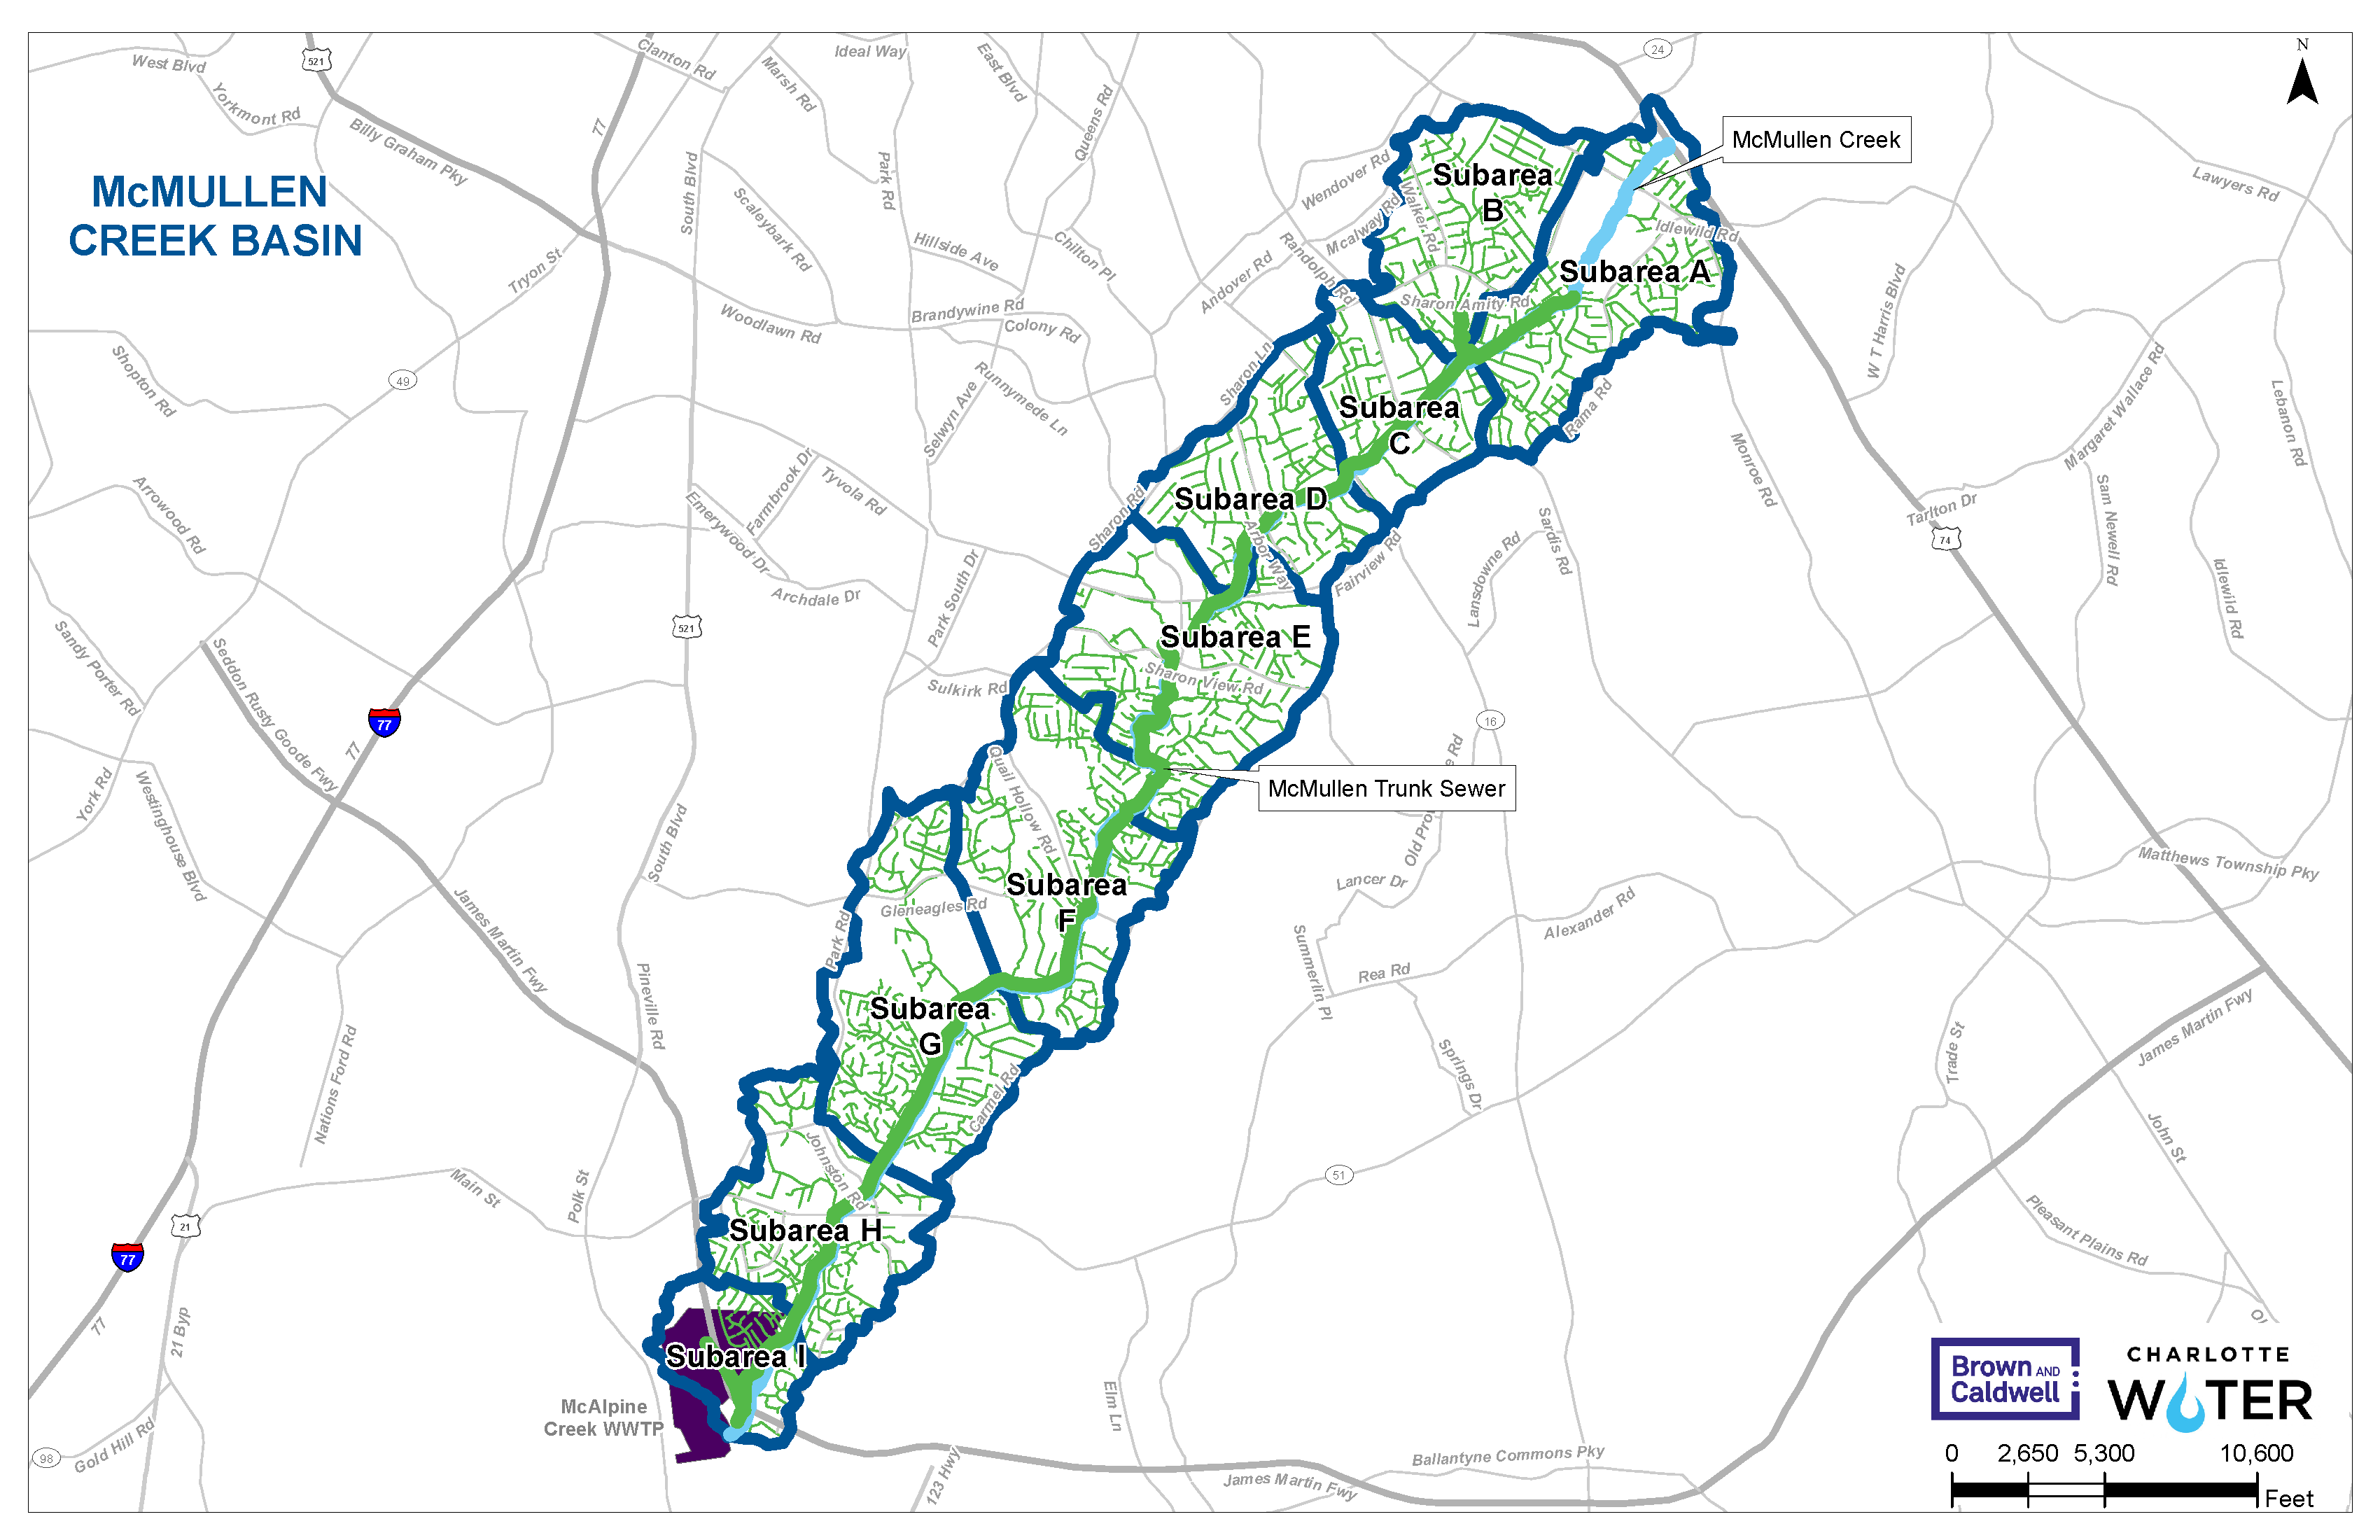 McMullen Creek Basin Study Map for Charlotte Water